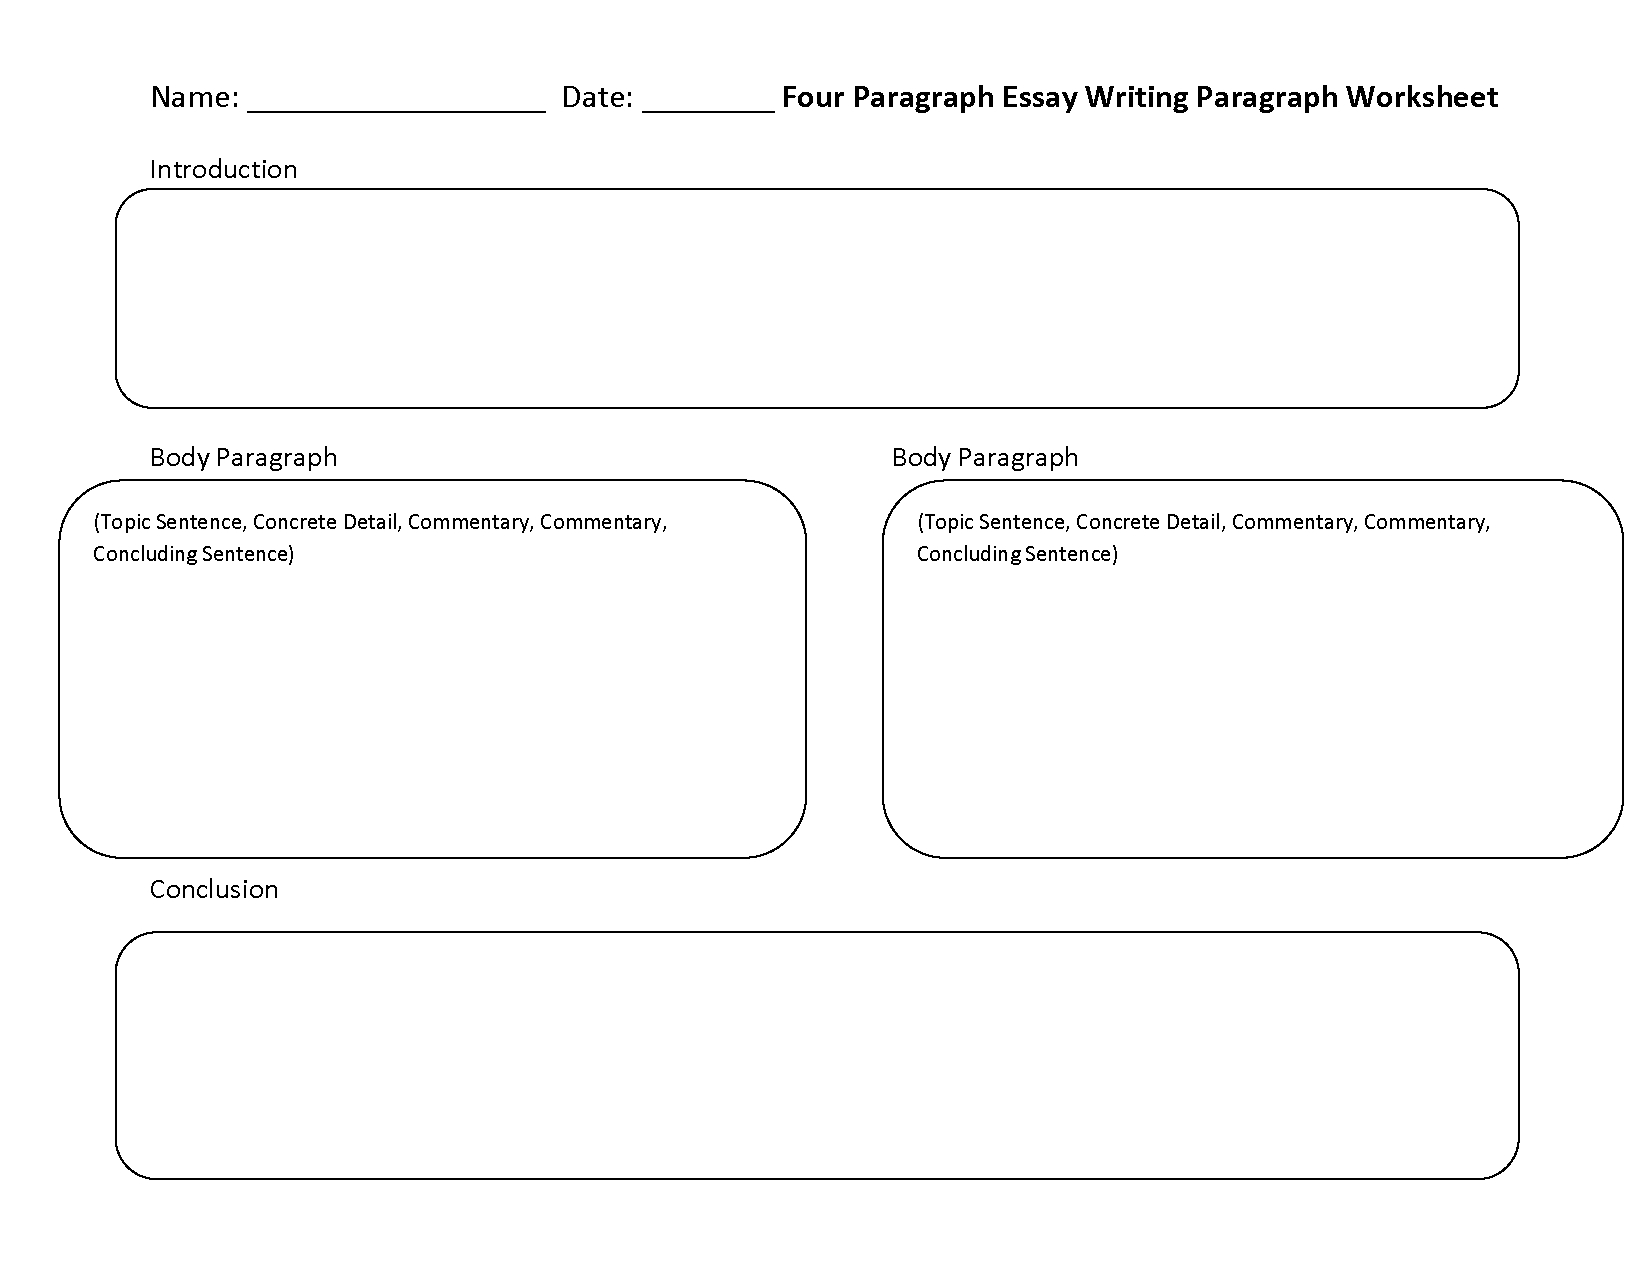 Writing Worksheets | Paragraph Writing Worksheets - 6Th Grade Writing Worksheets Printable Free